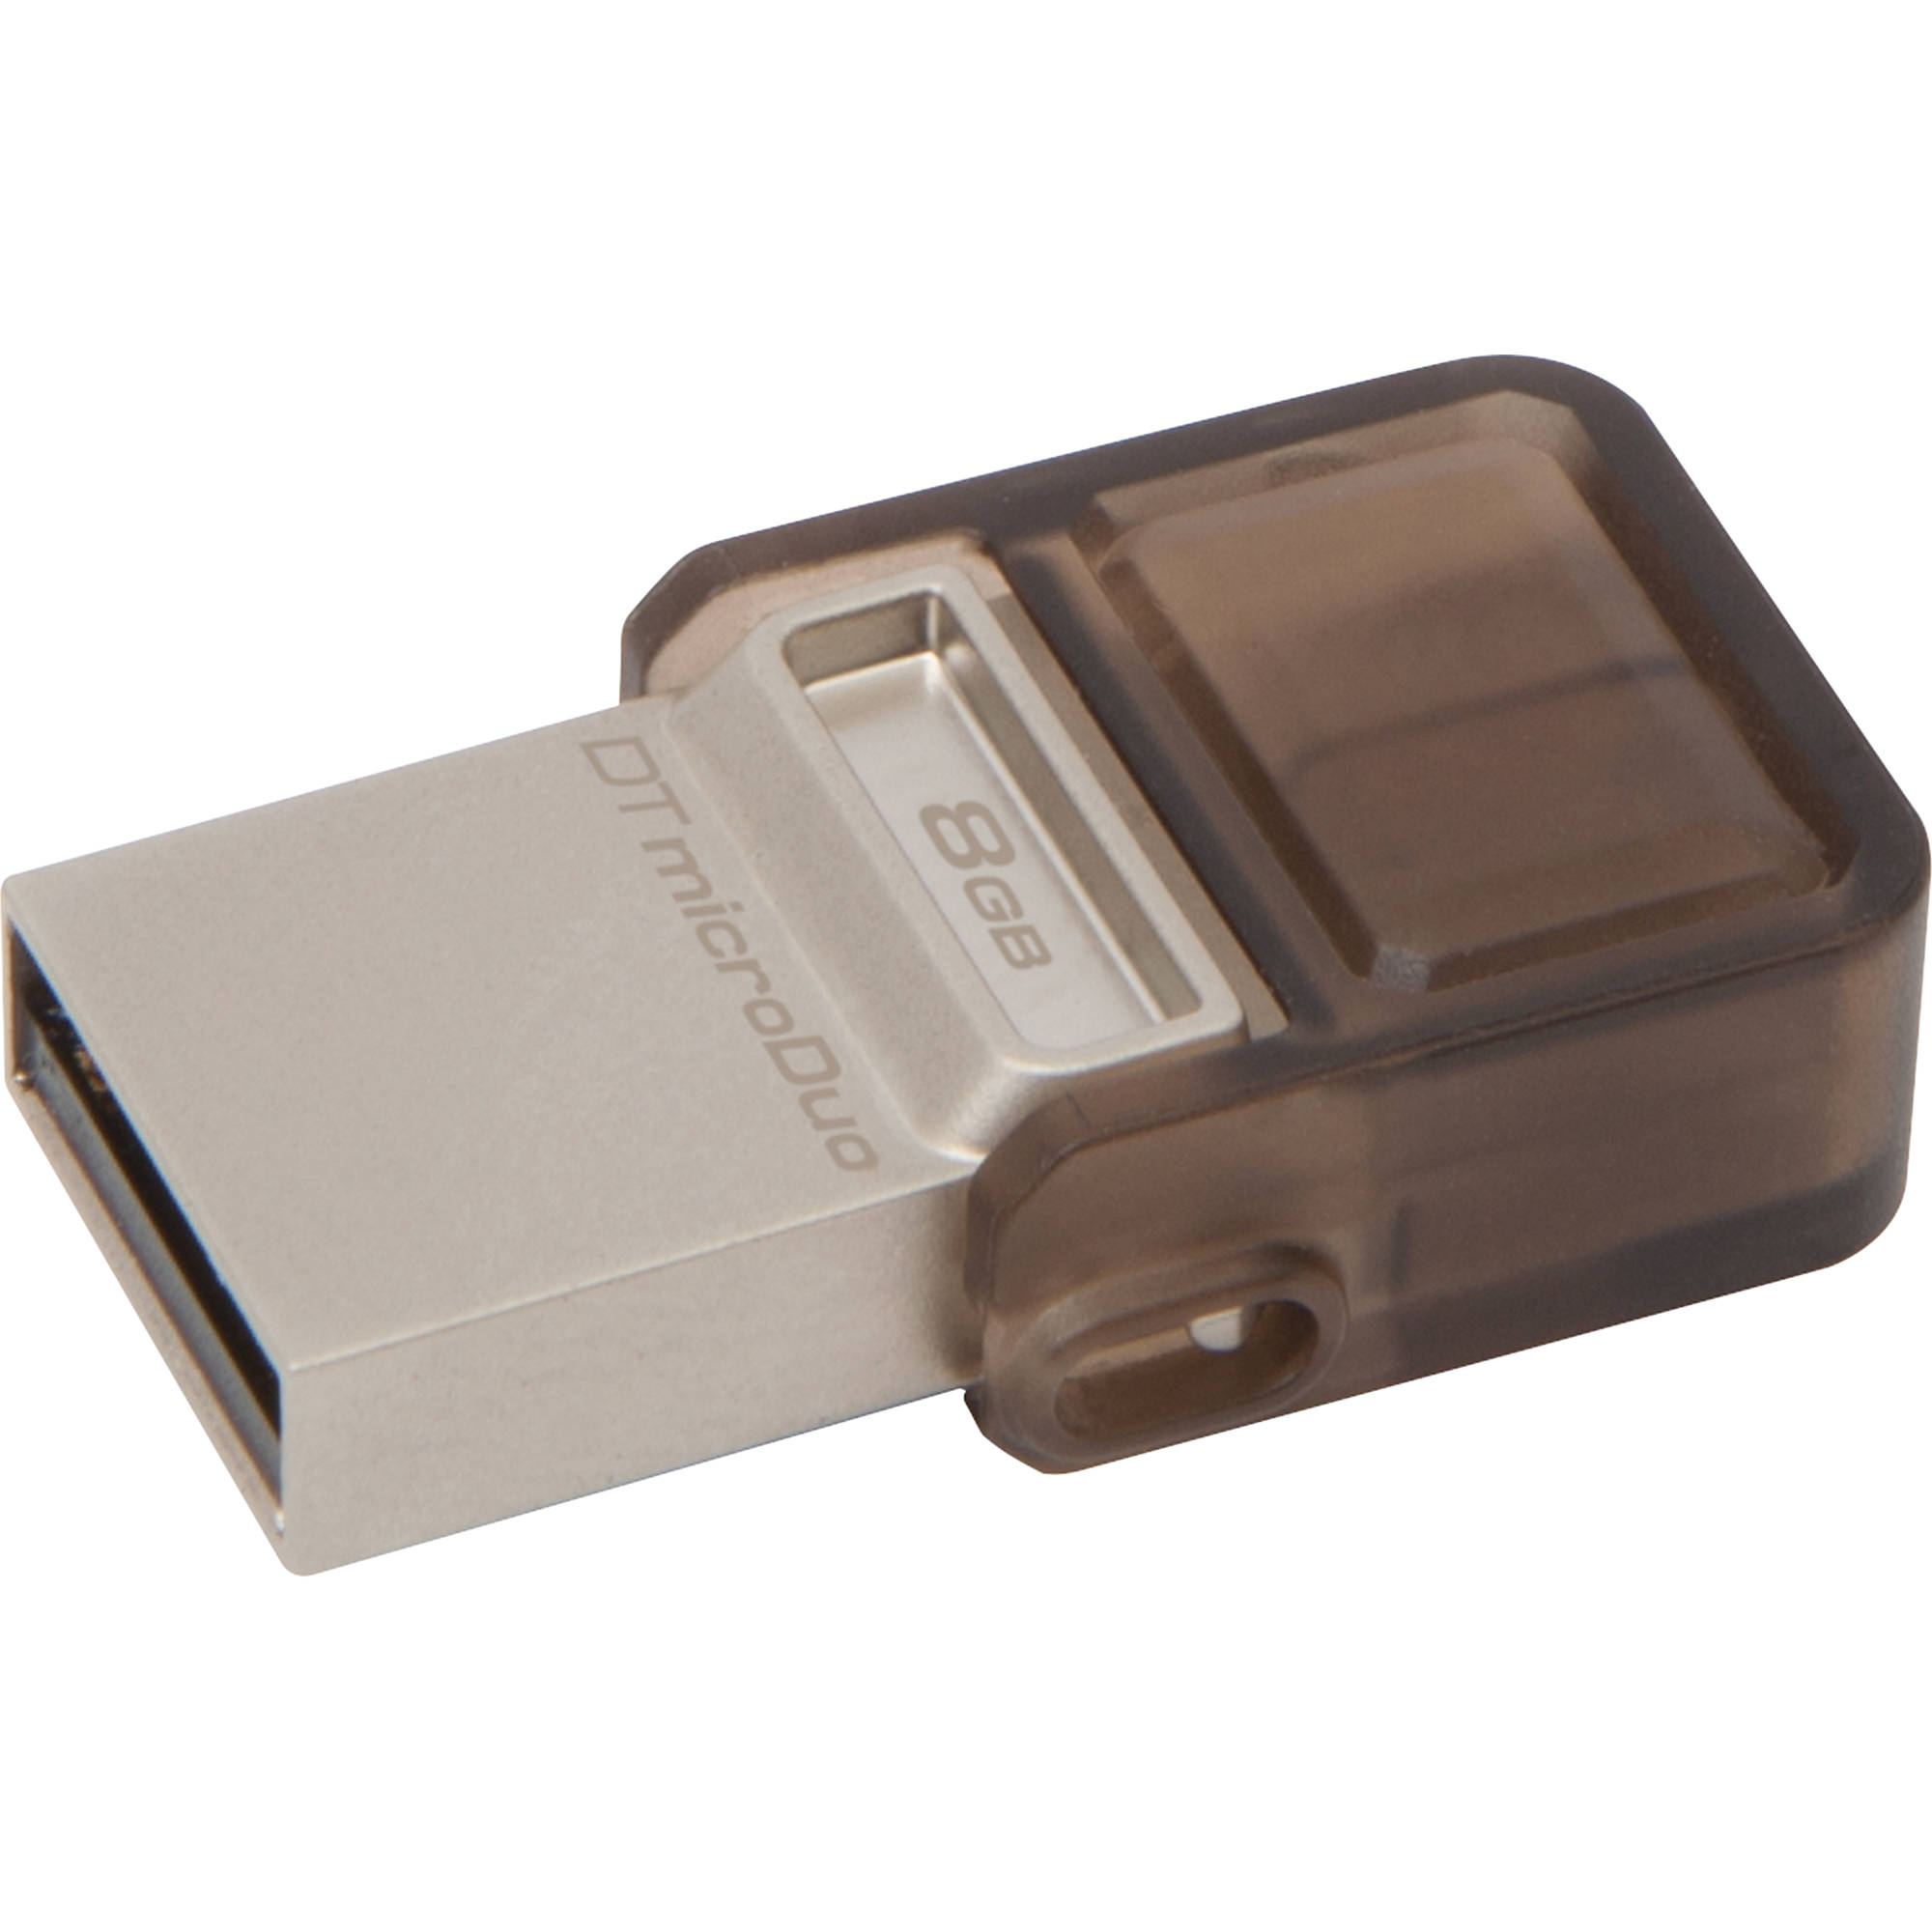 Kingston 2 gig thumb drive